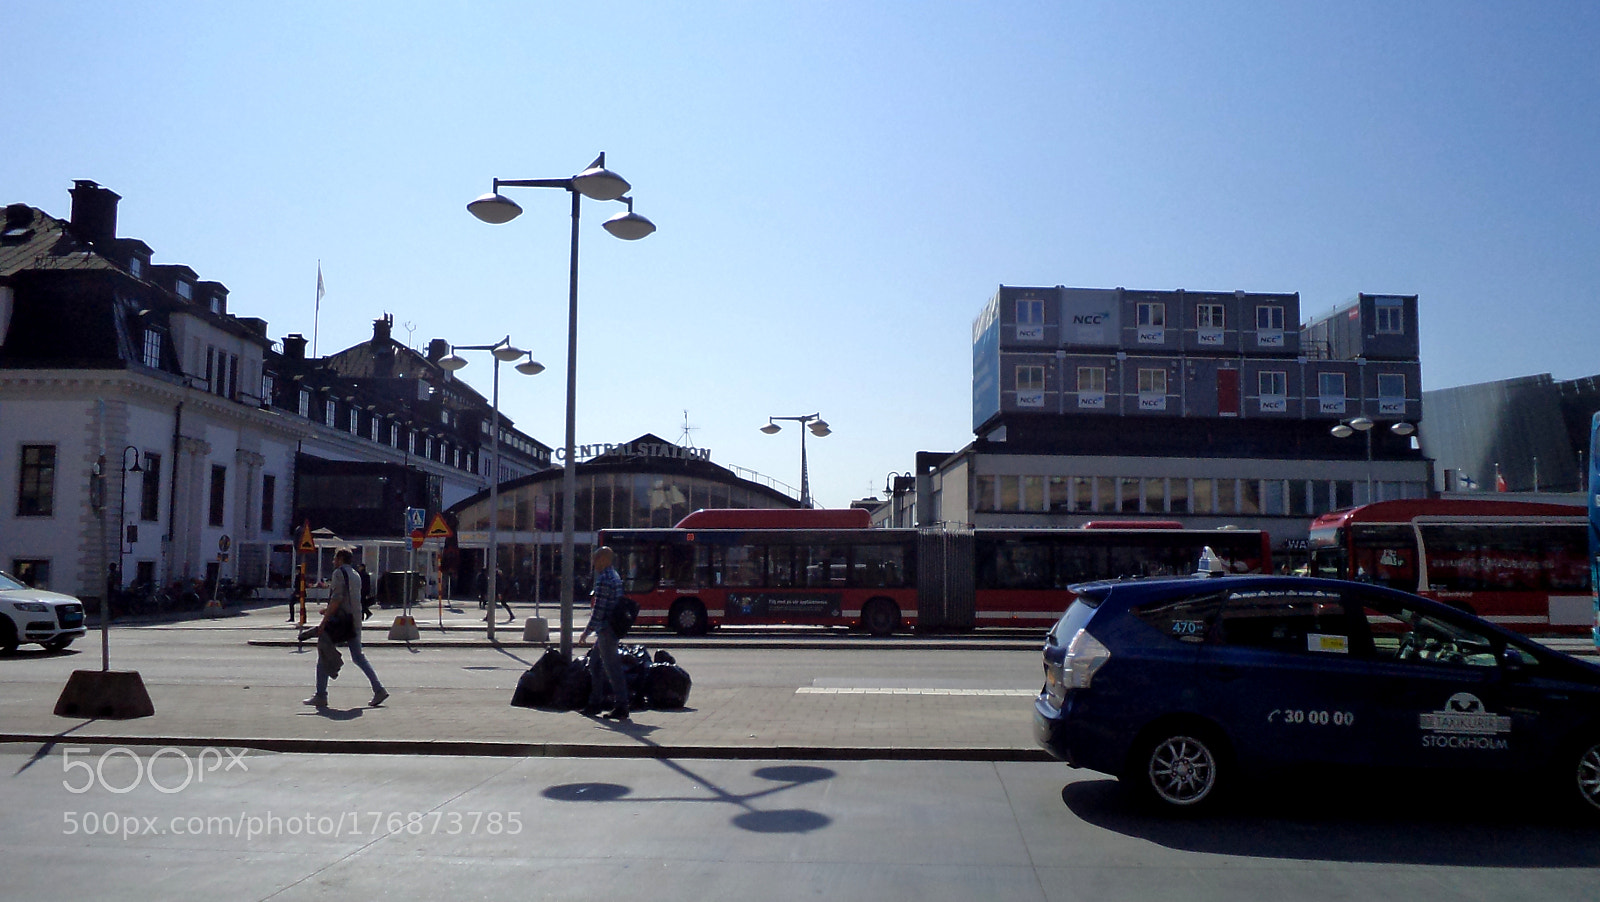 The Station, Sony DSC-S3000